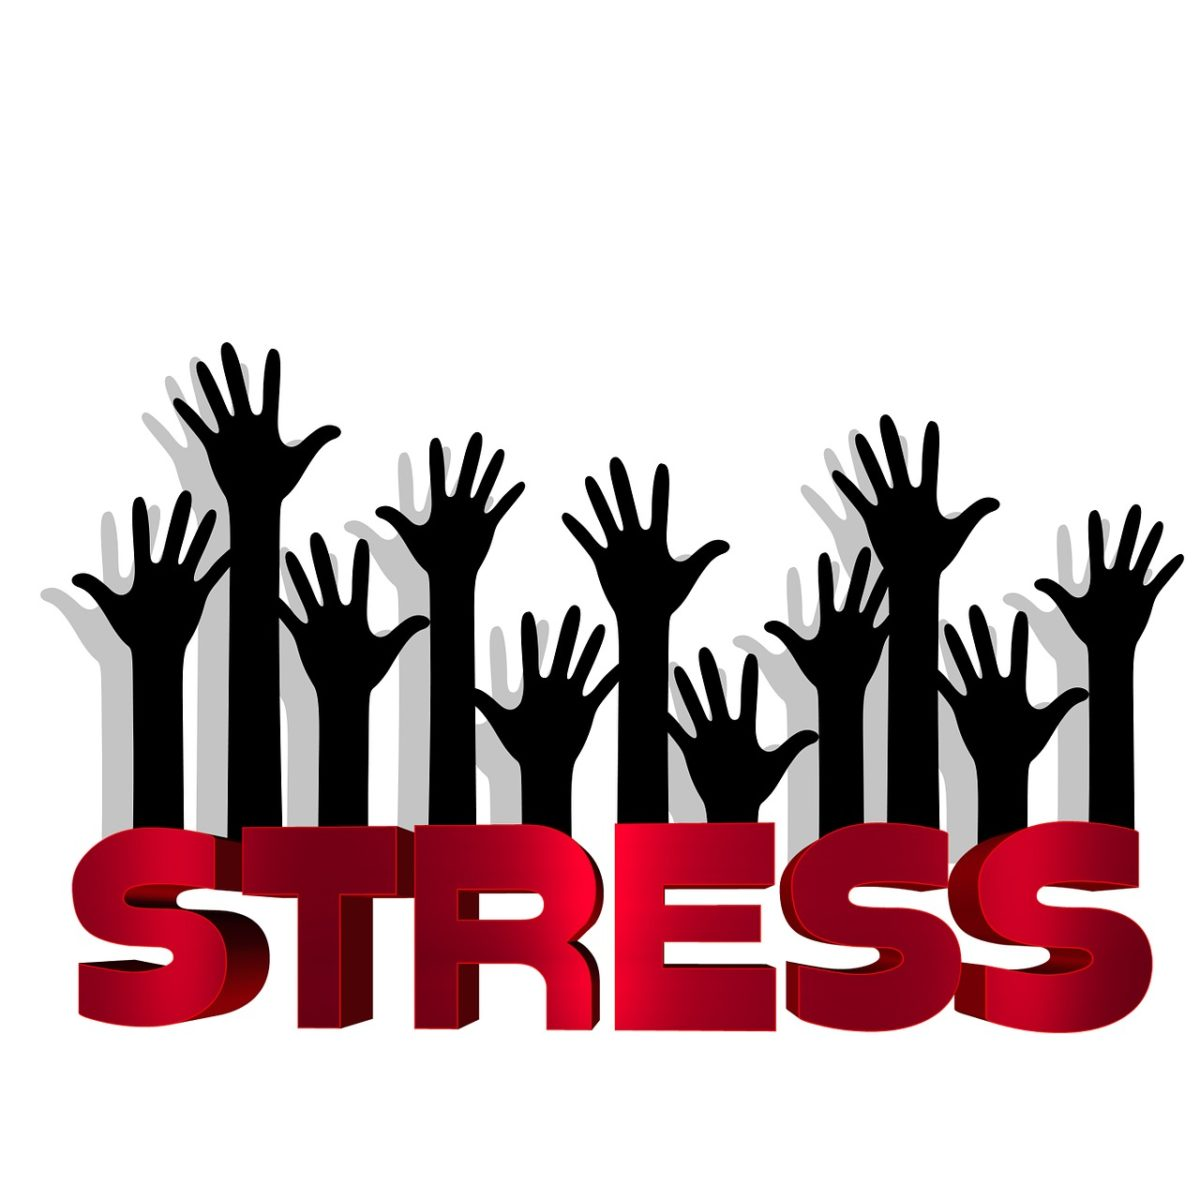 Did You Know This Are the 5 Best Ways to Reduce the Stress for Your Employees?